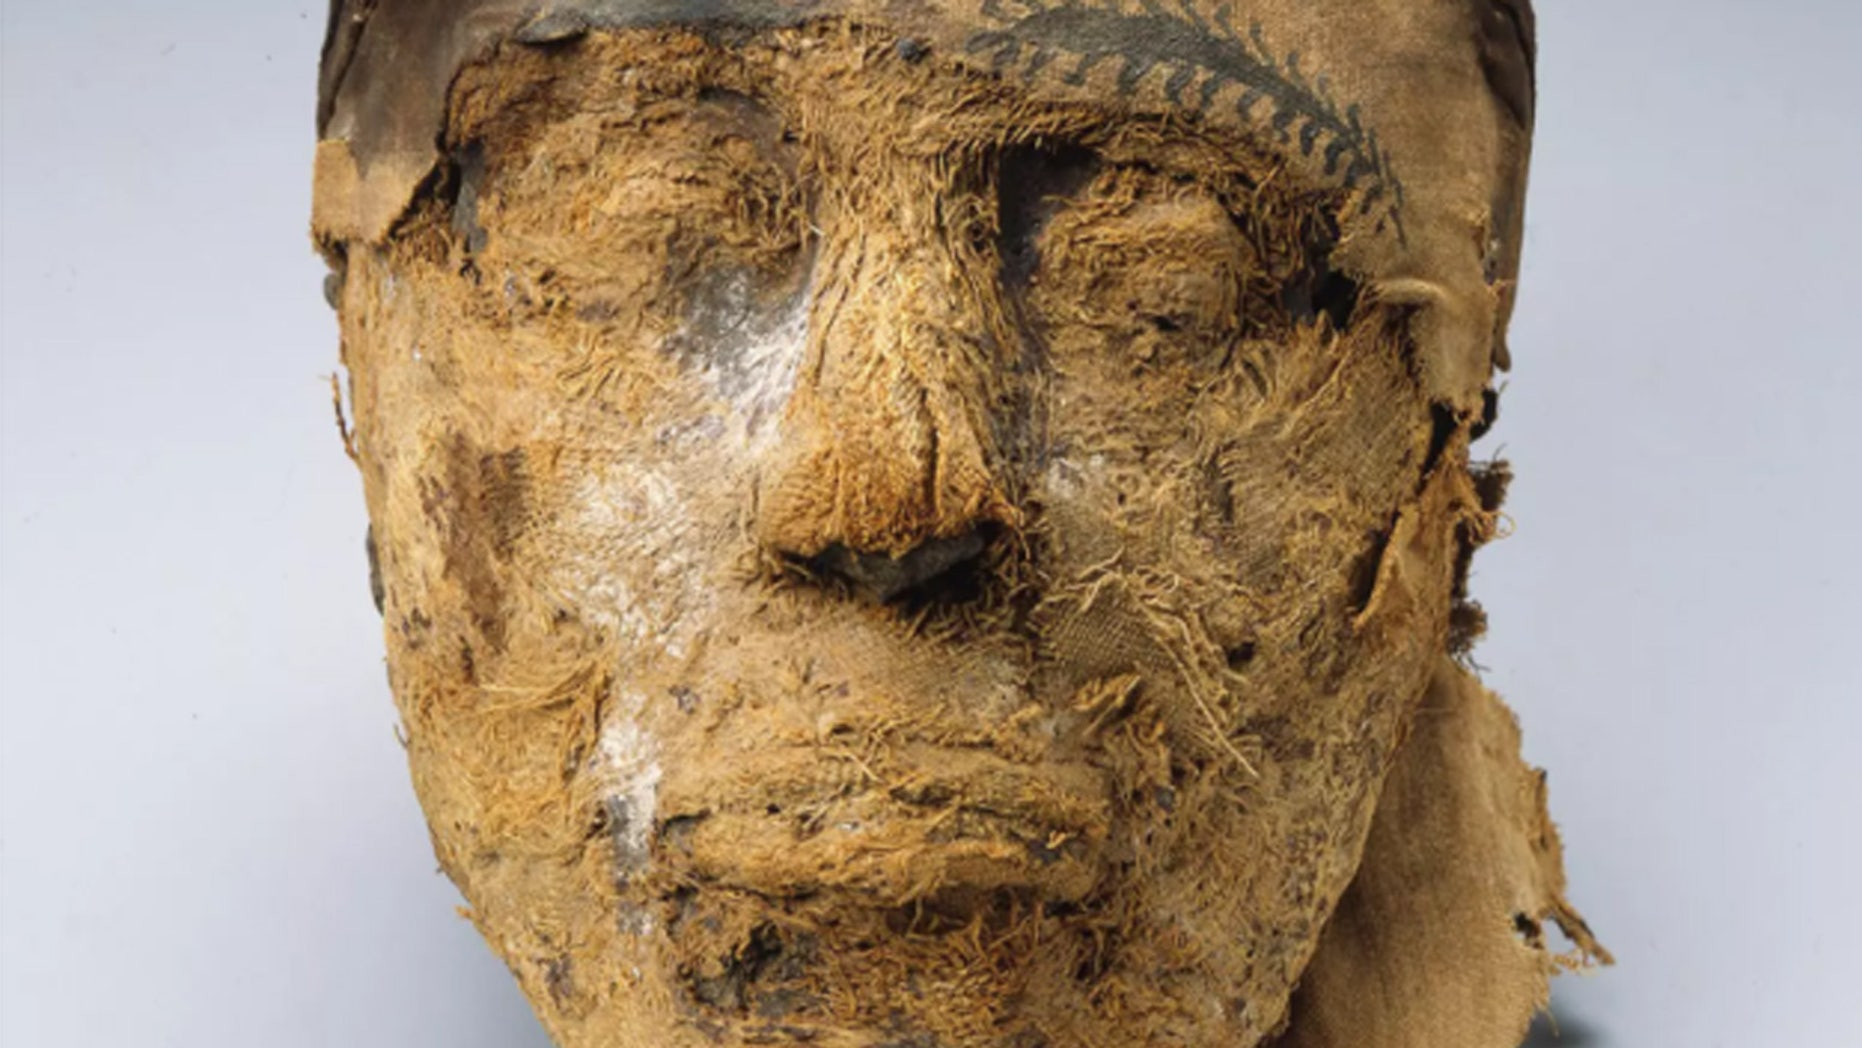 The FBI has cracked its oldest case after extracting DNA from a 4,000-year-old mummy's head.